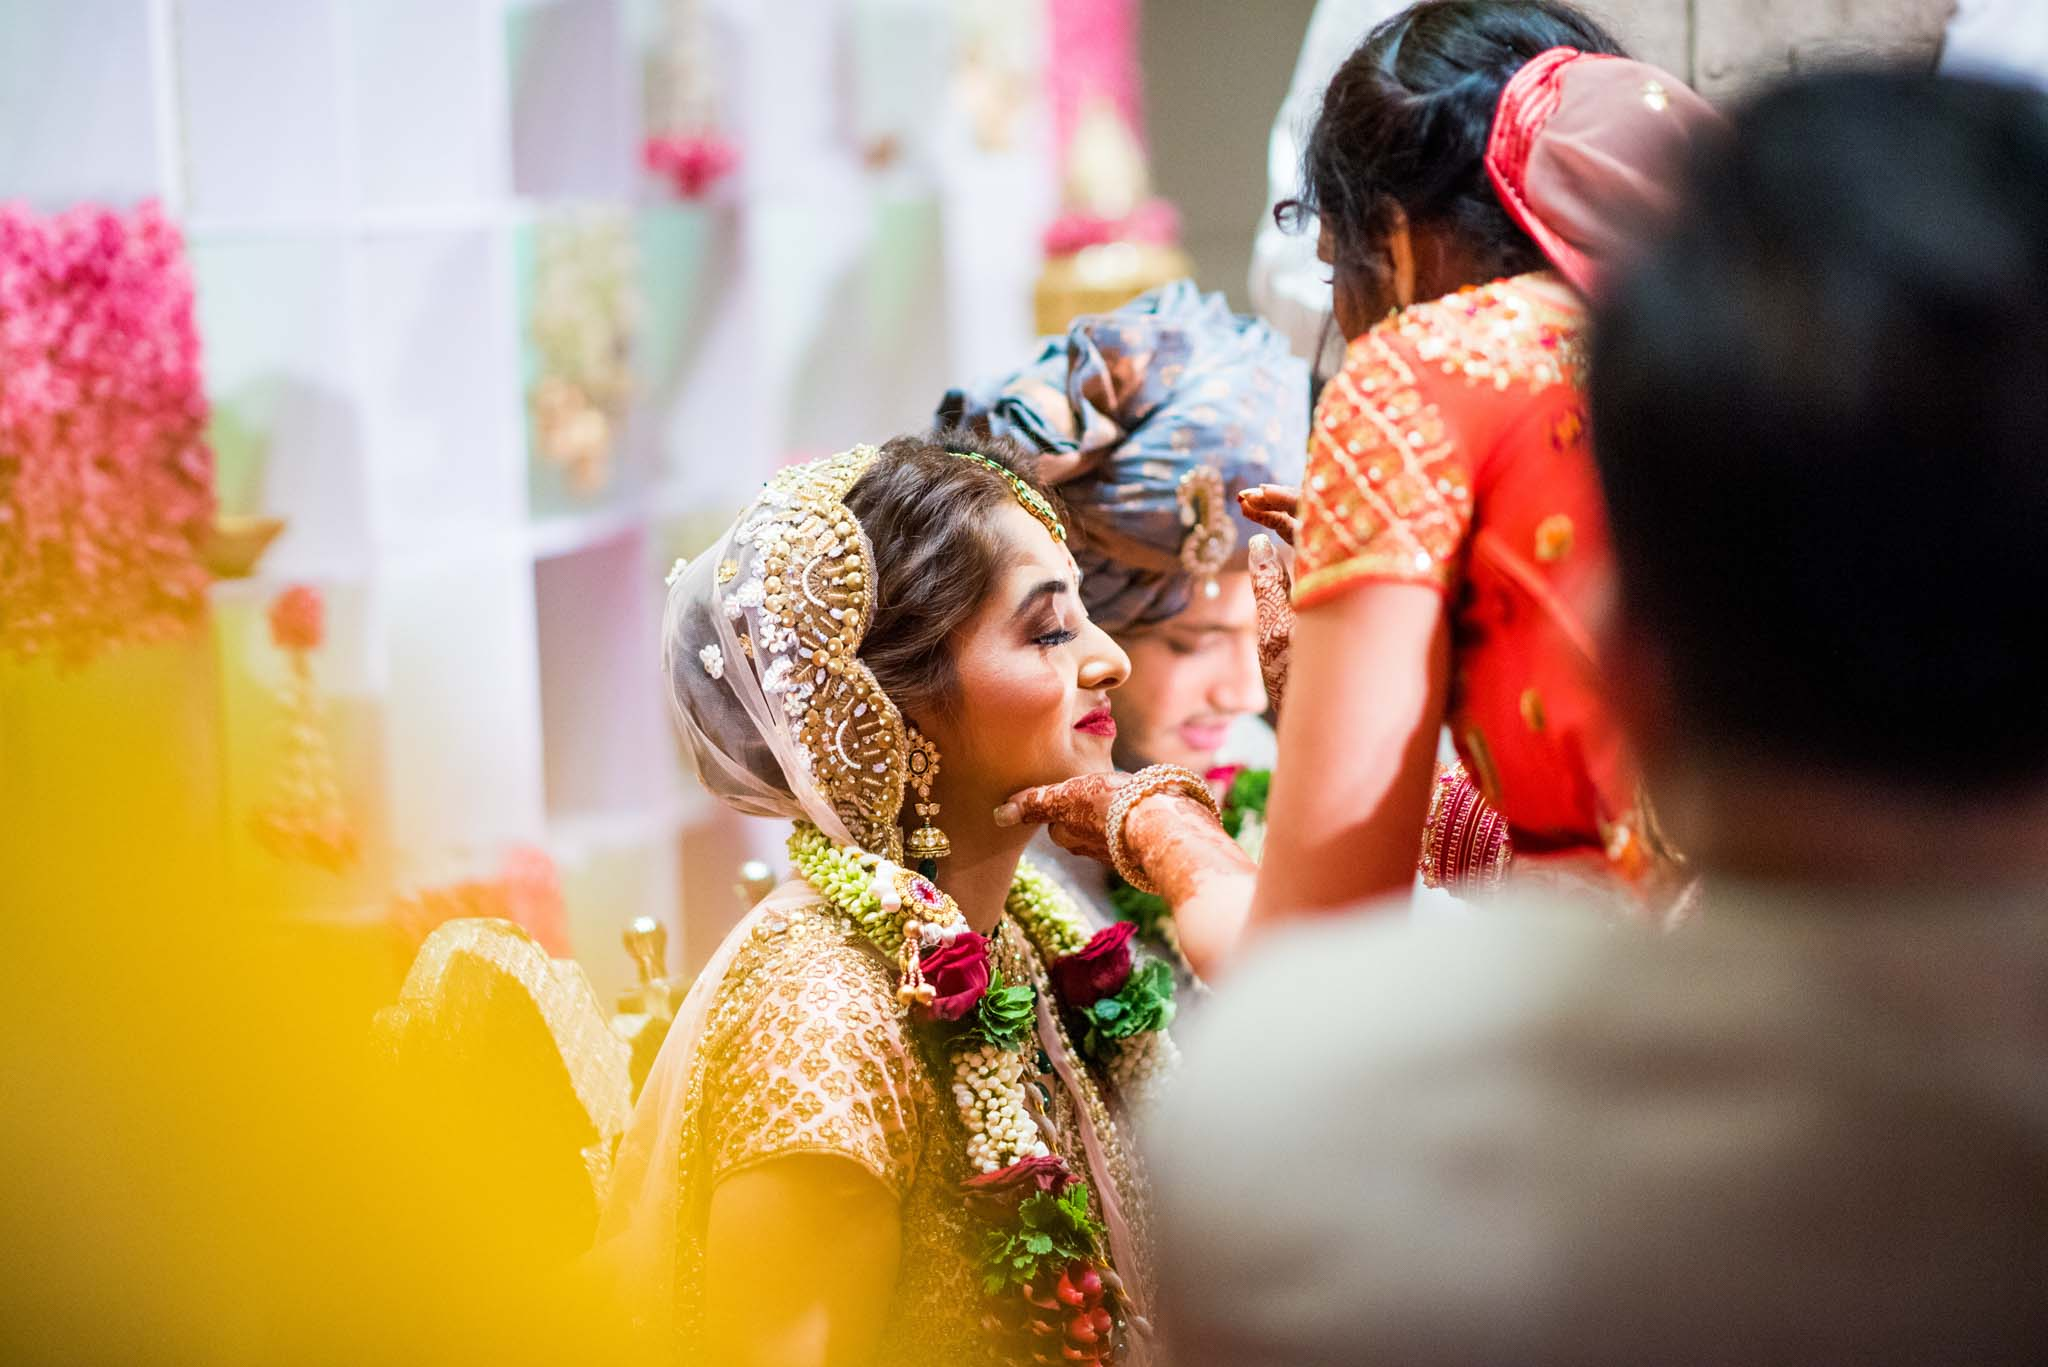 StRegis-Palladium-Mumbai-Candid-Wedding-Photography-41